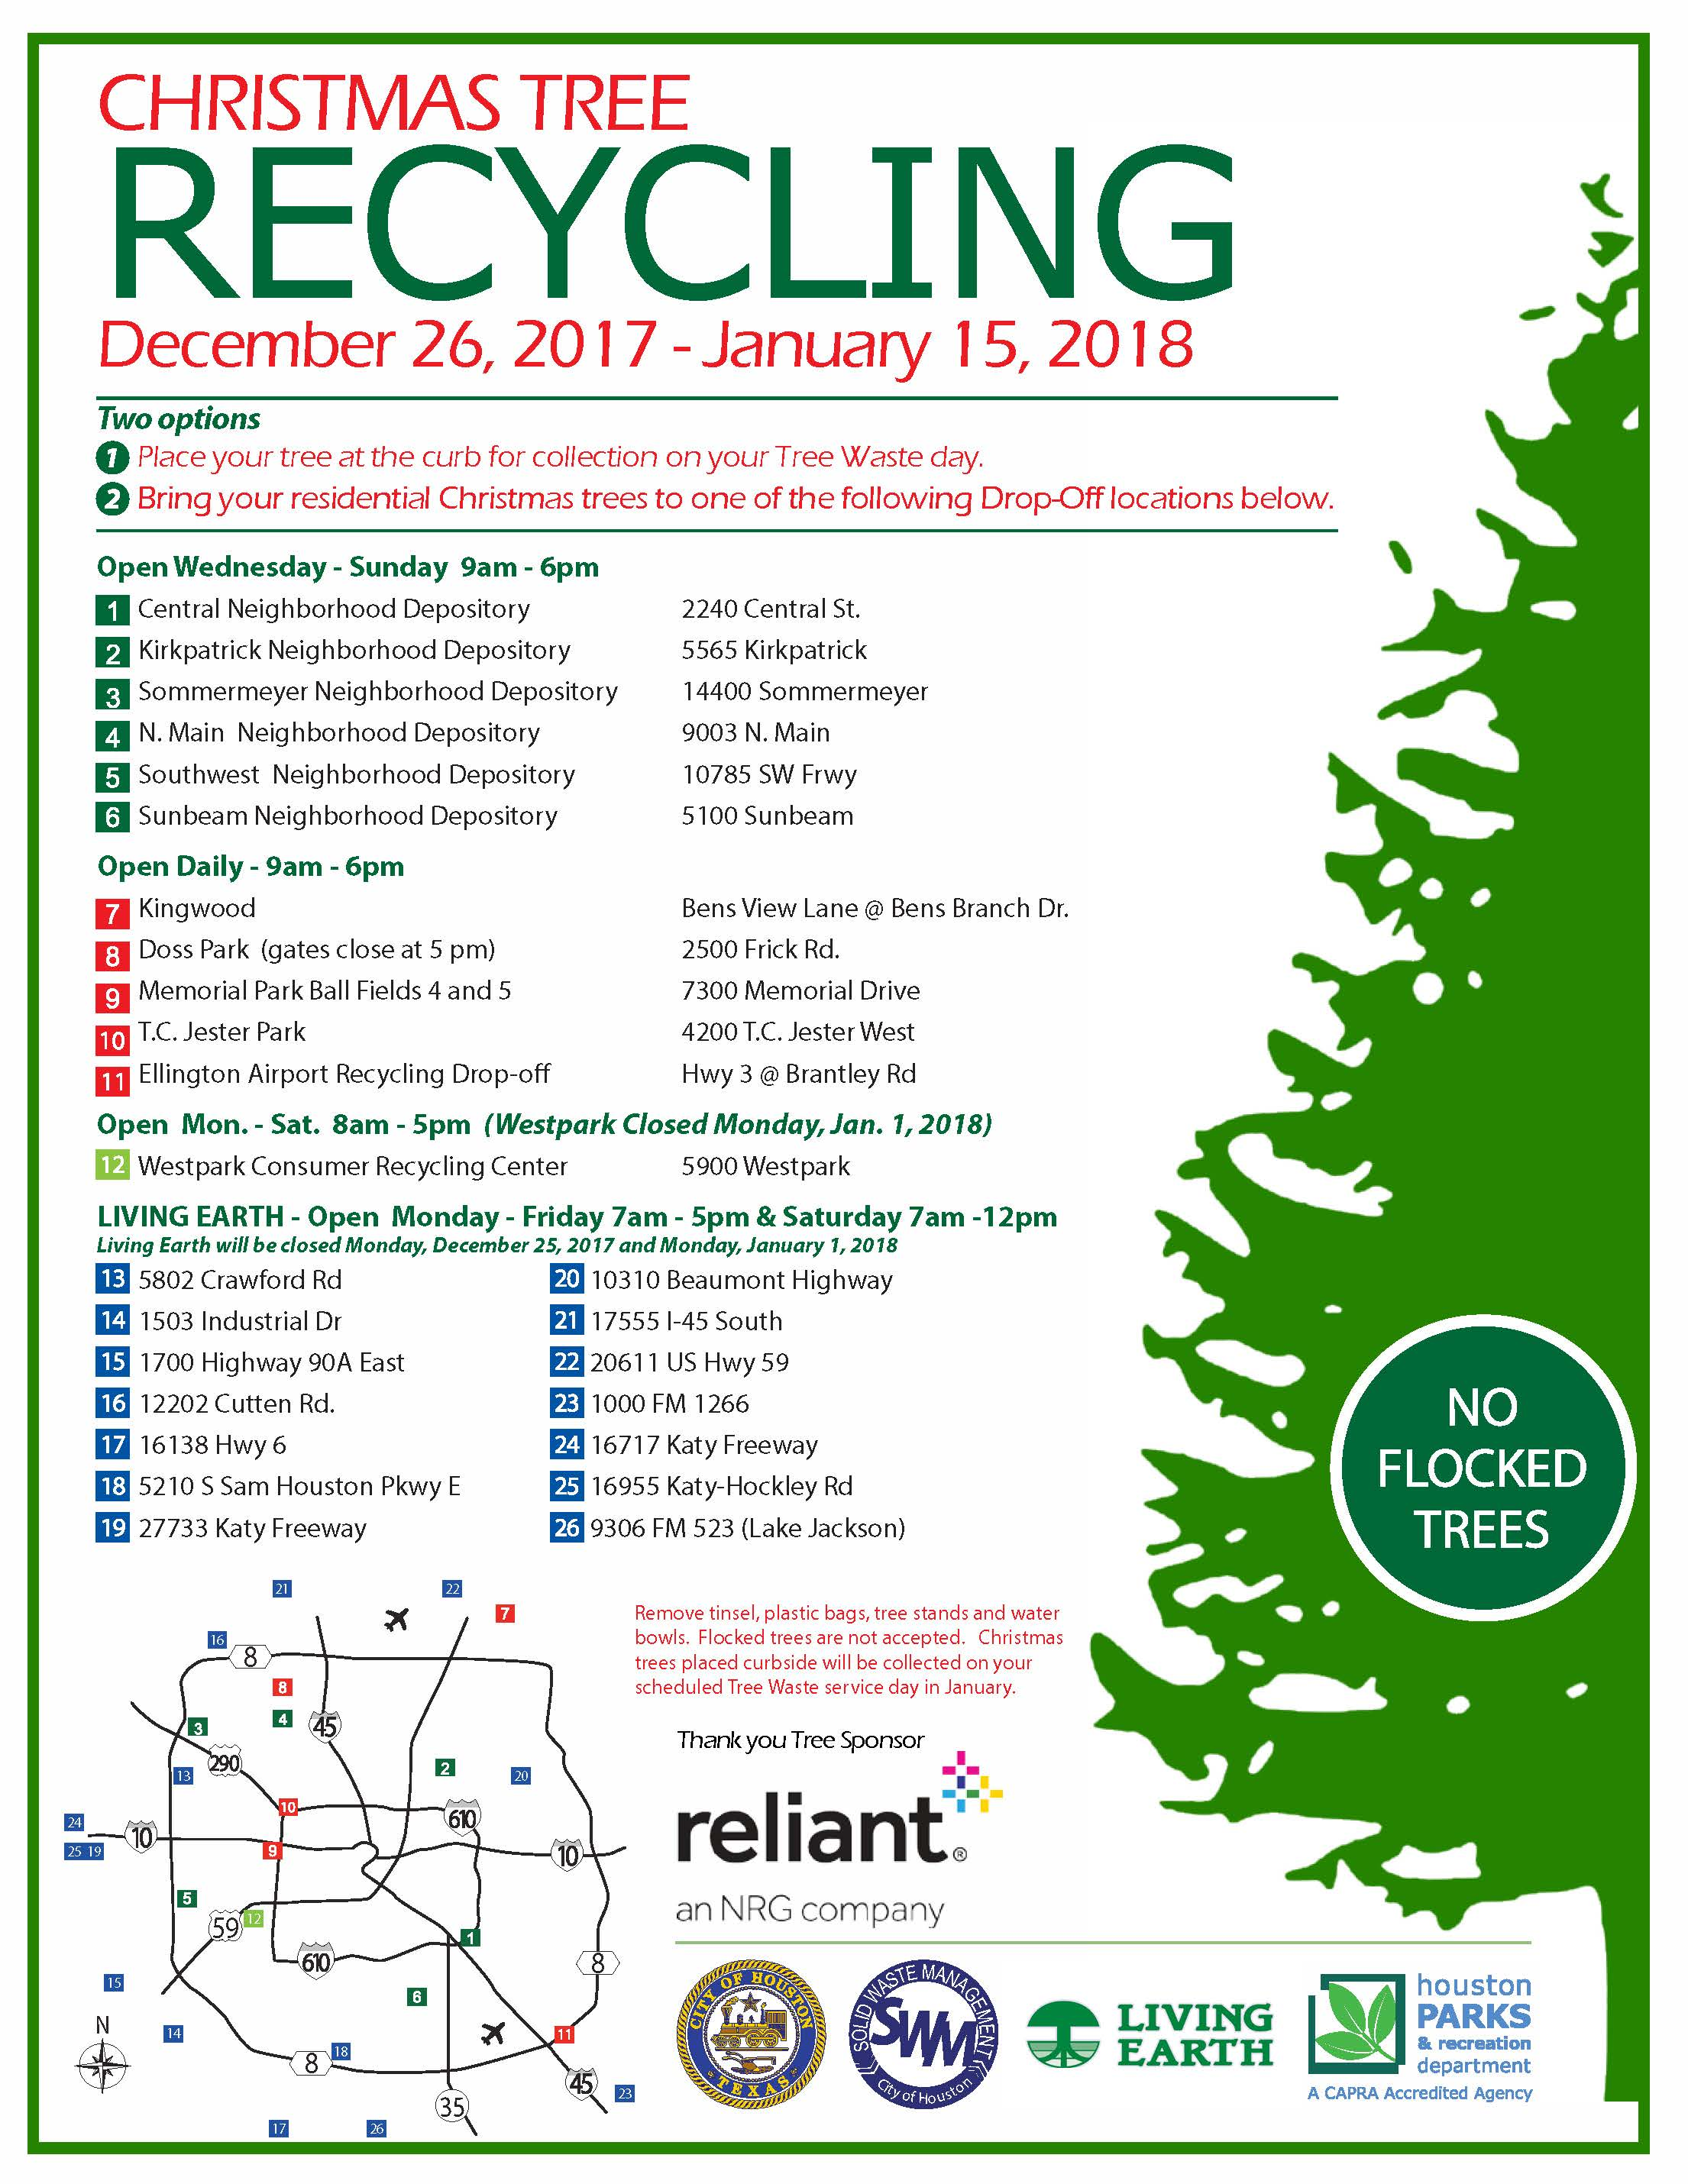 tree_recycling_2017-2018(v1) (004)